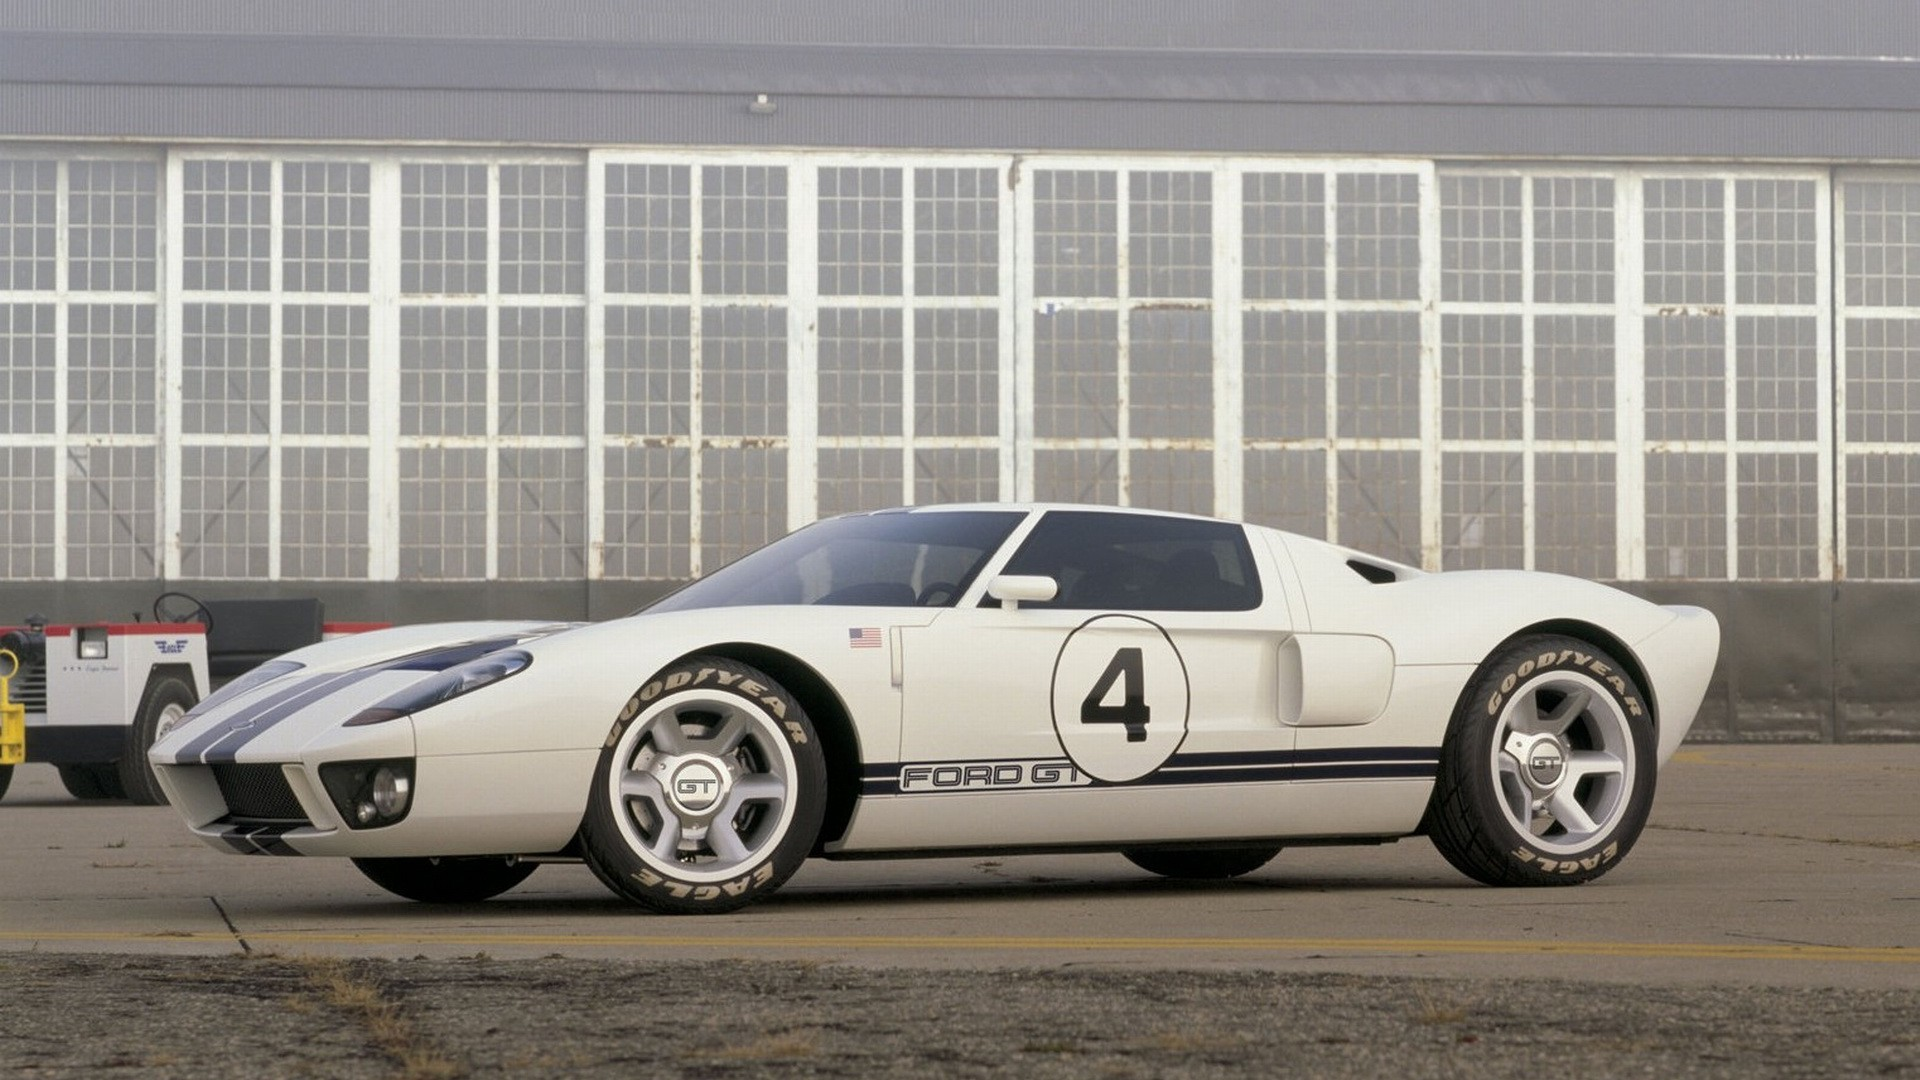 Ford GT40 Concept 2002 08 1920x1080 WallpapersFord GT 1920x1080 1920x1080